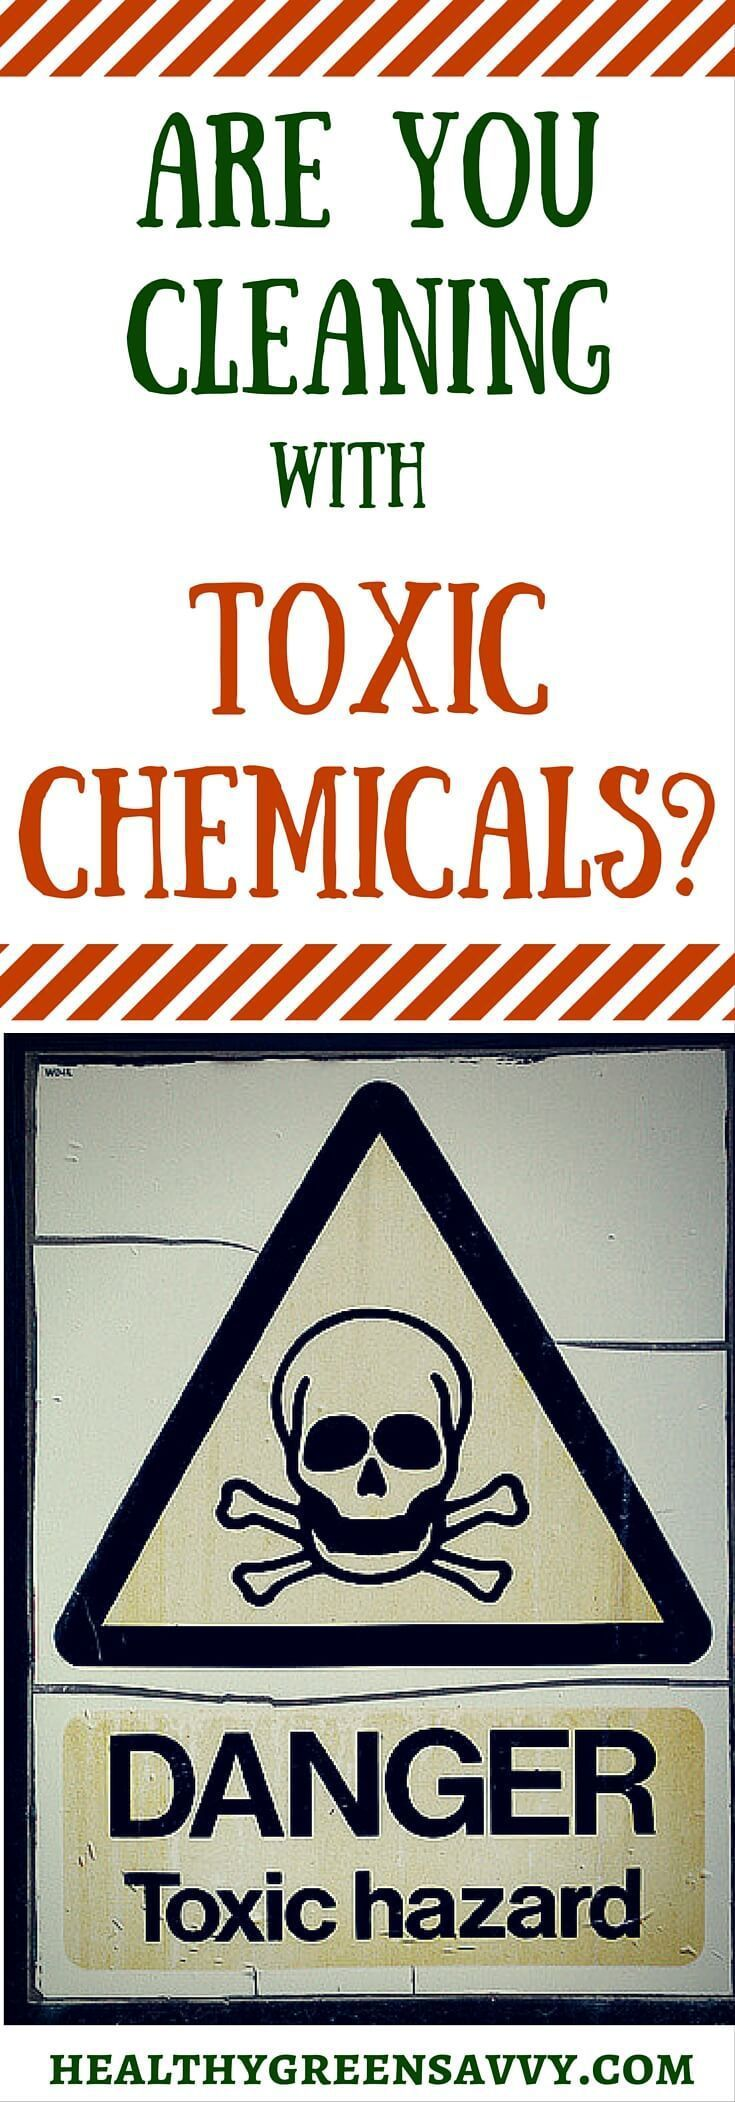 Most commercial cleaners are filled with chemicals that haven't been tested for safety. Here's what you need to know to protect you and your family. Bonus: Free guide to keeping toxics out of your house, which is harder than you think. Click to read more or repin to save for later.